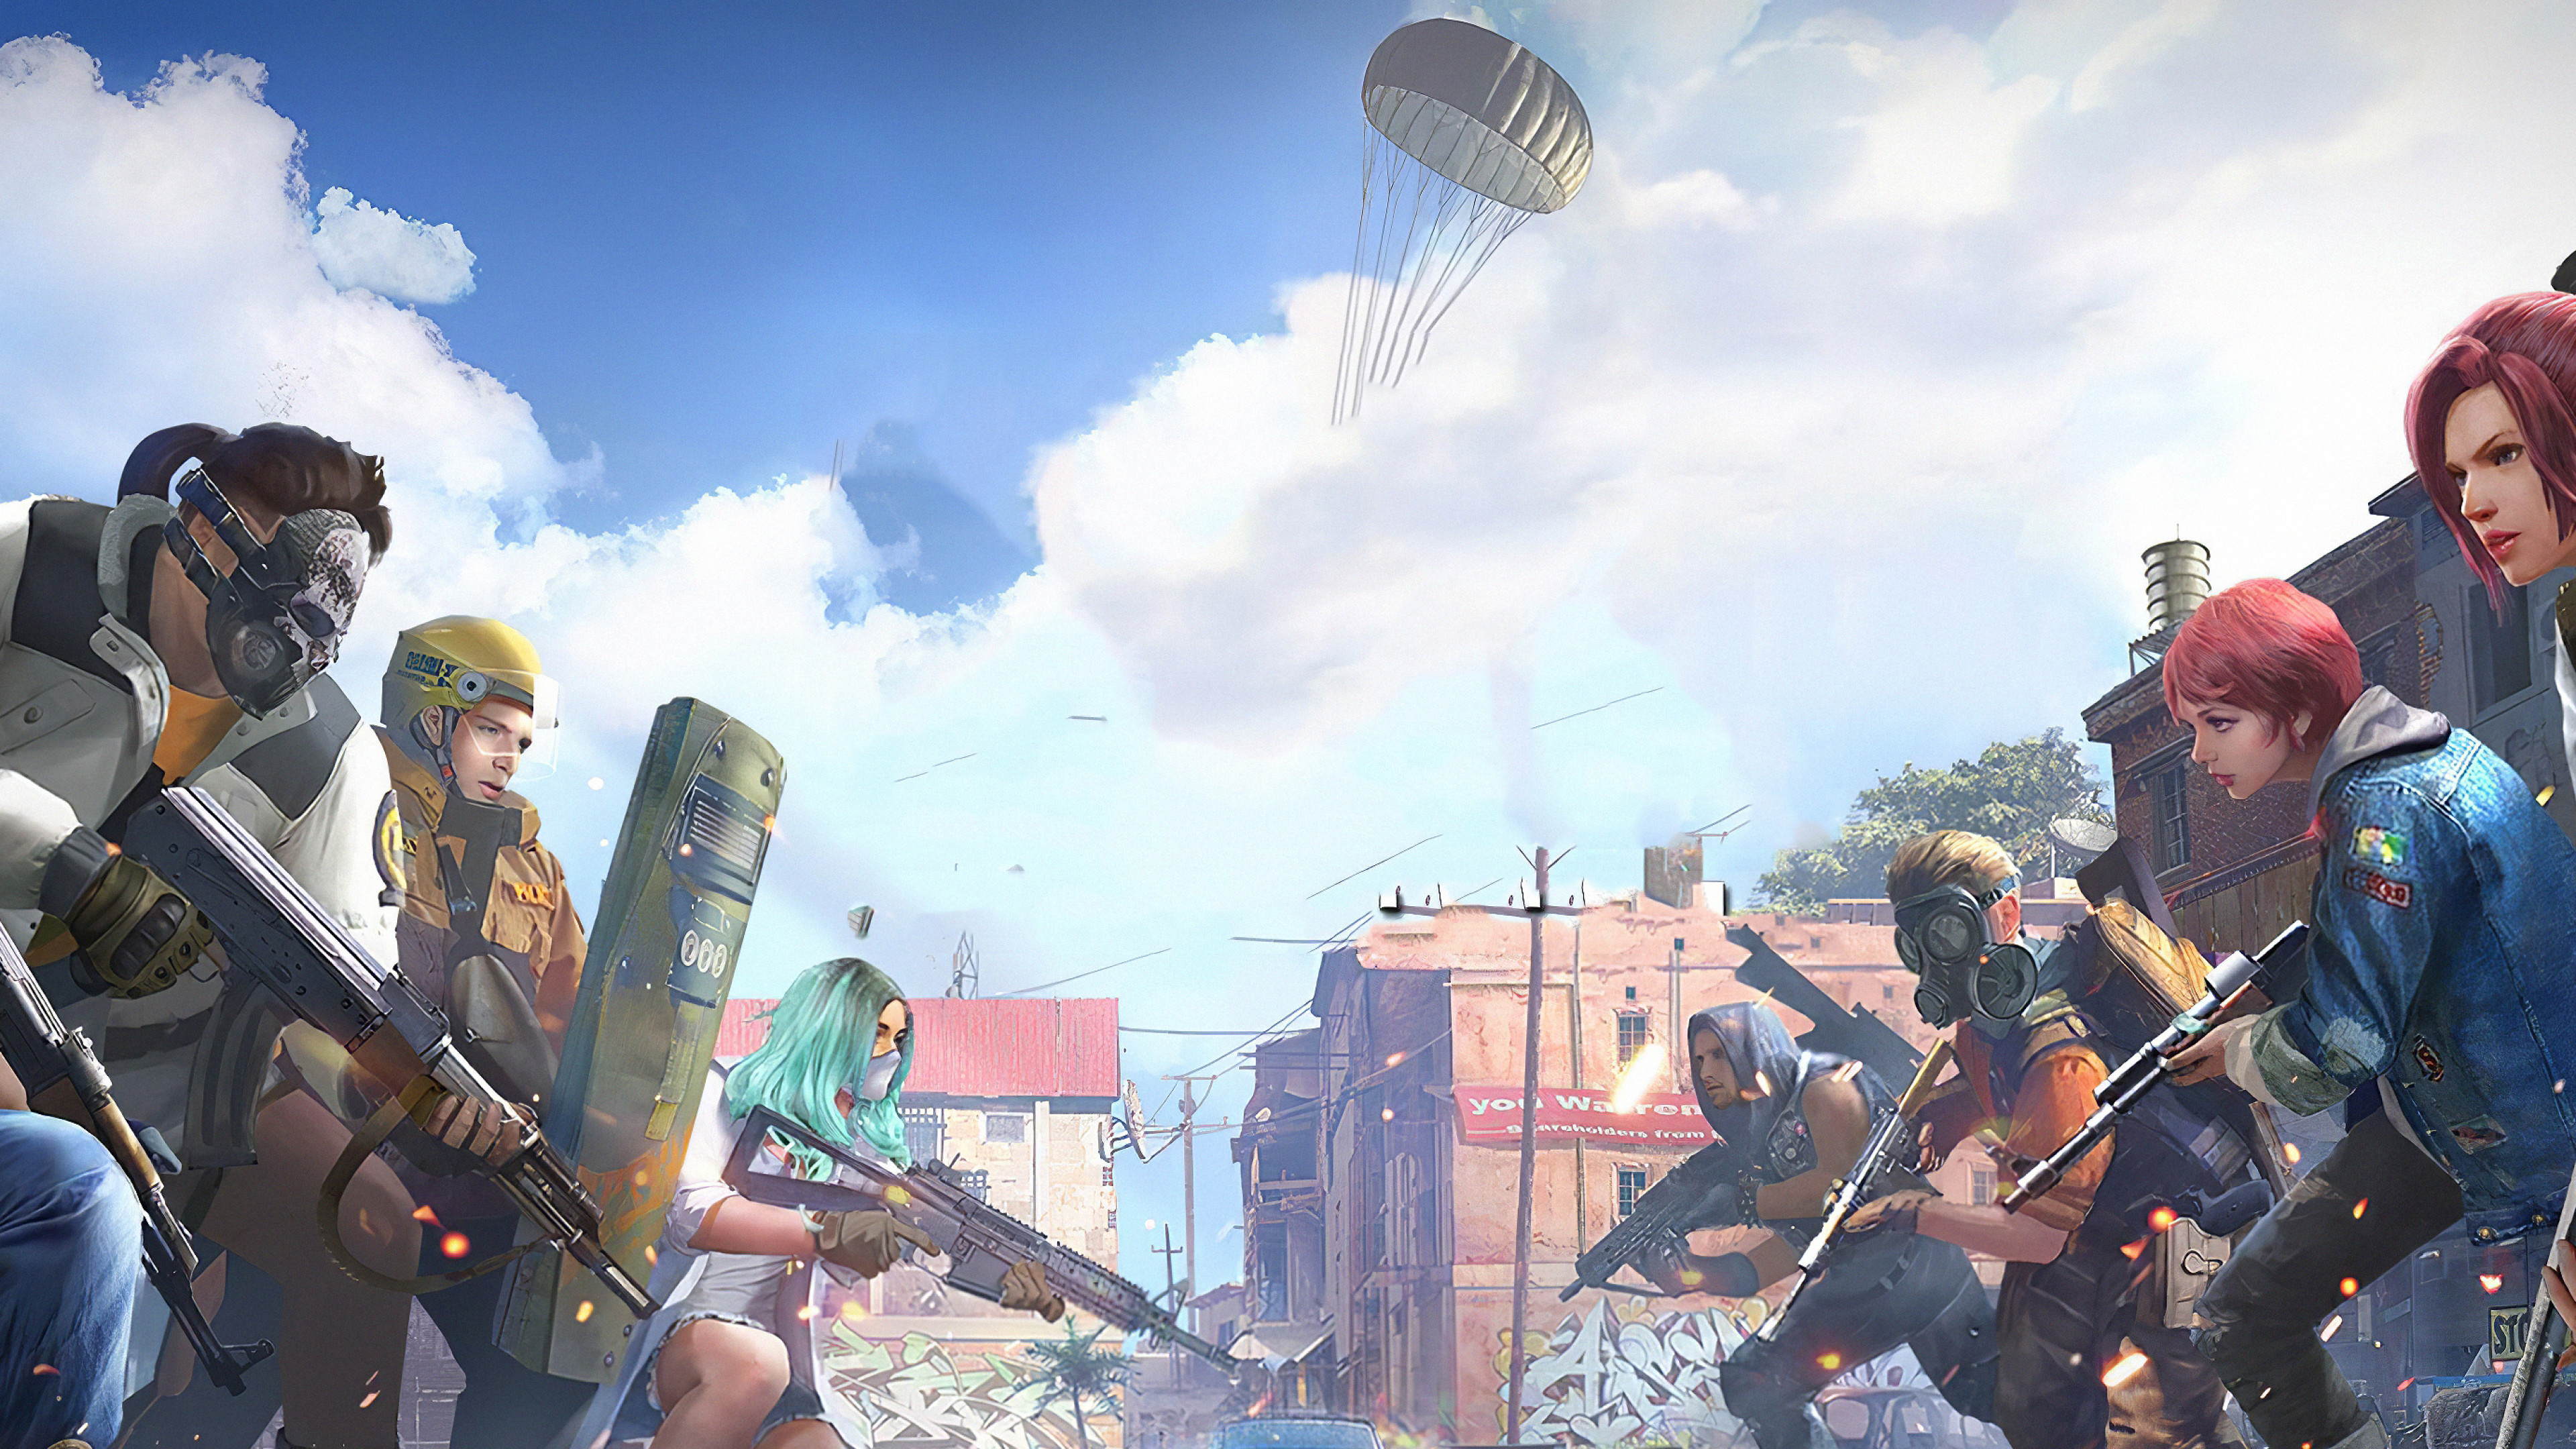 pubg2019 cup z9 3840x2160 1 1 - Pubg 2019 Cup - pubg wallpapers, pubg 4k wallpapers, playerunknowns battlegrounds wallpapers